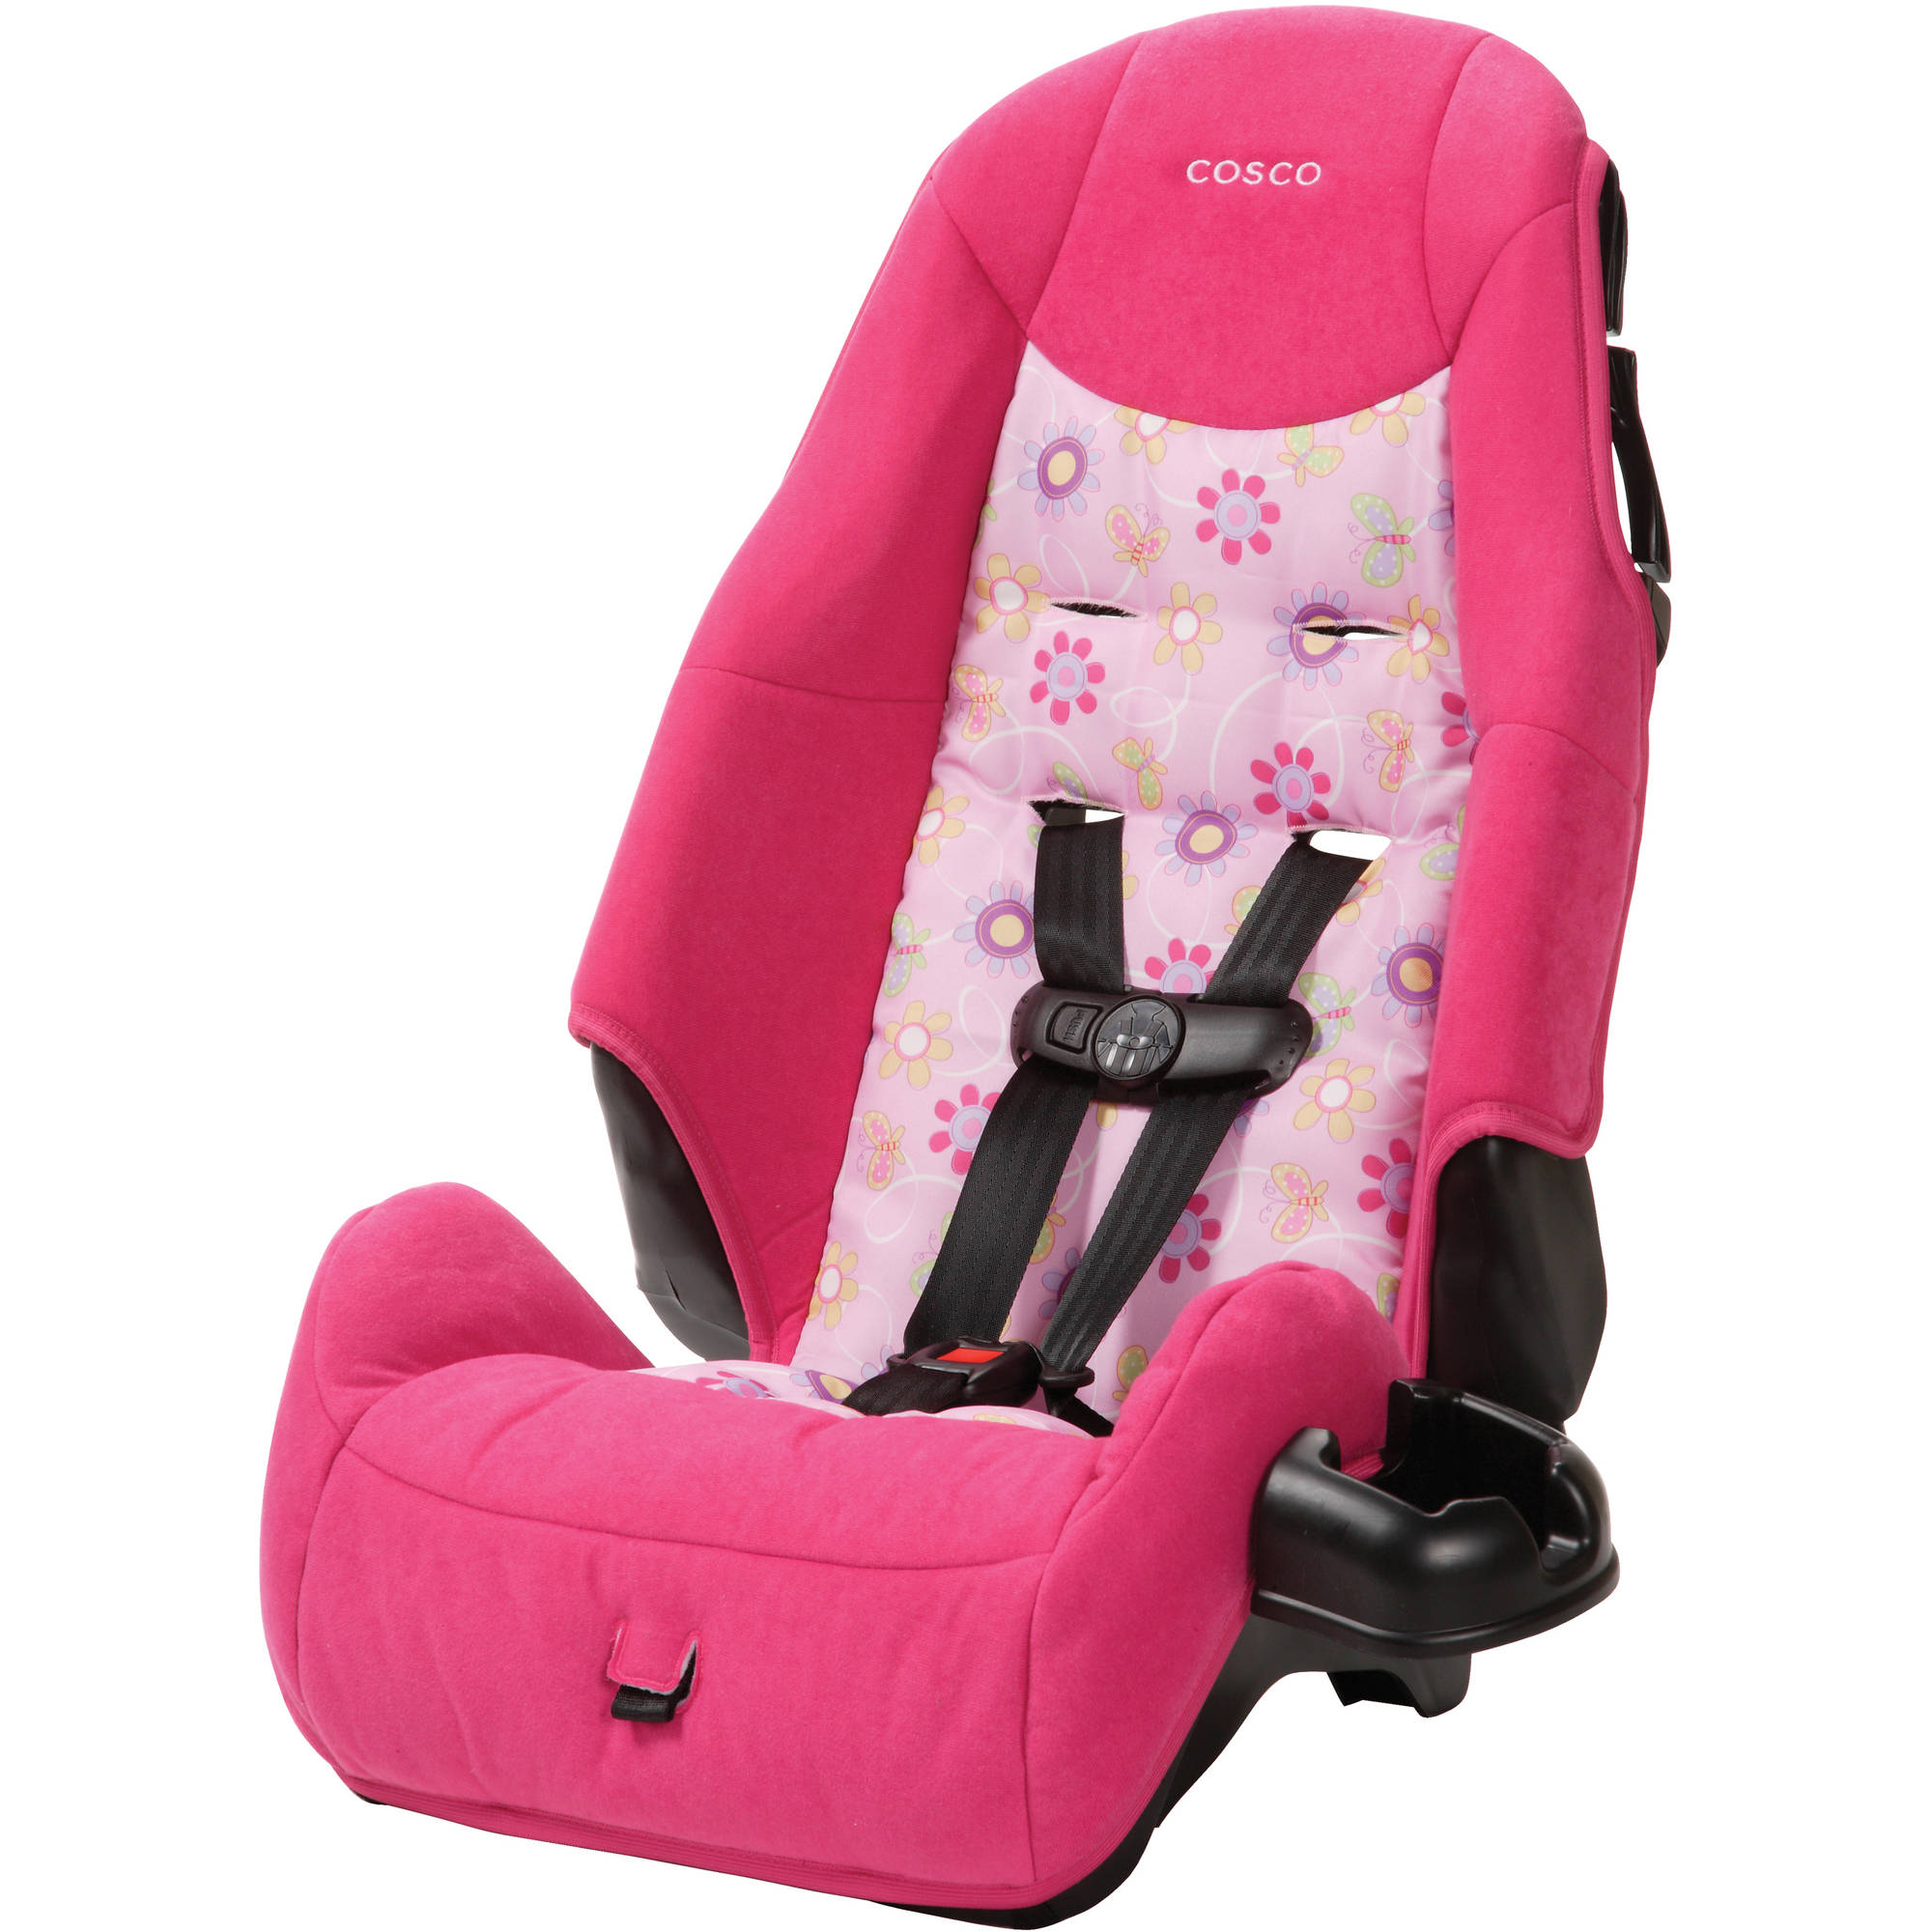 Cosco High-Back Booster Car Seat, Polyanna